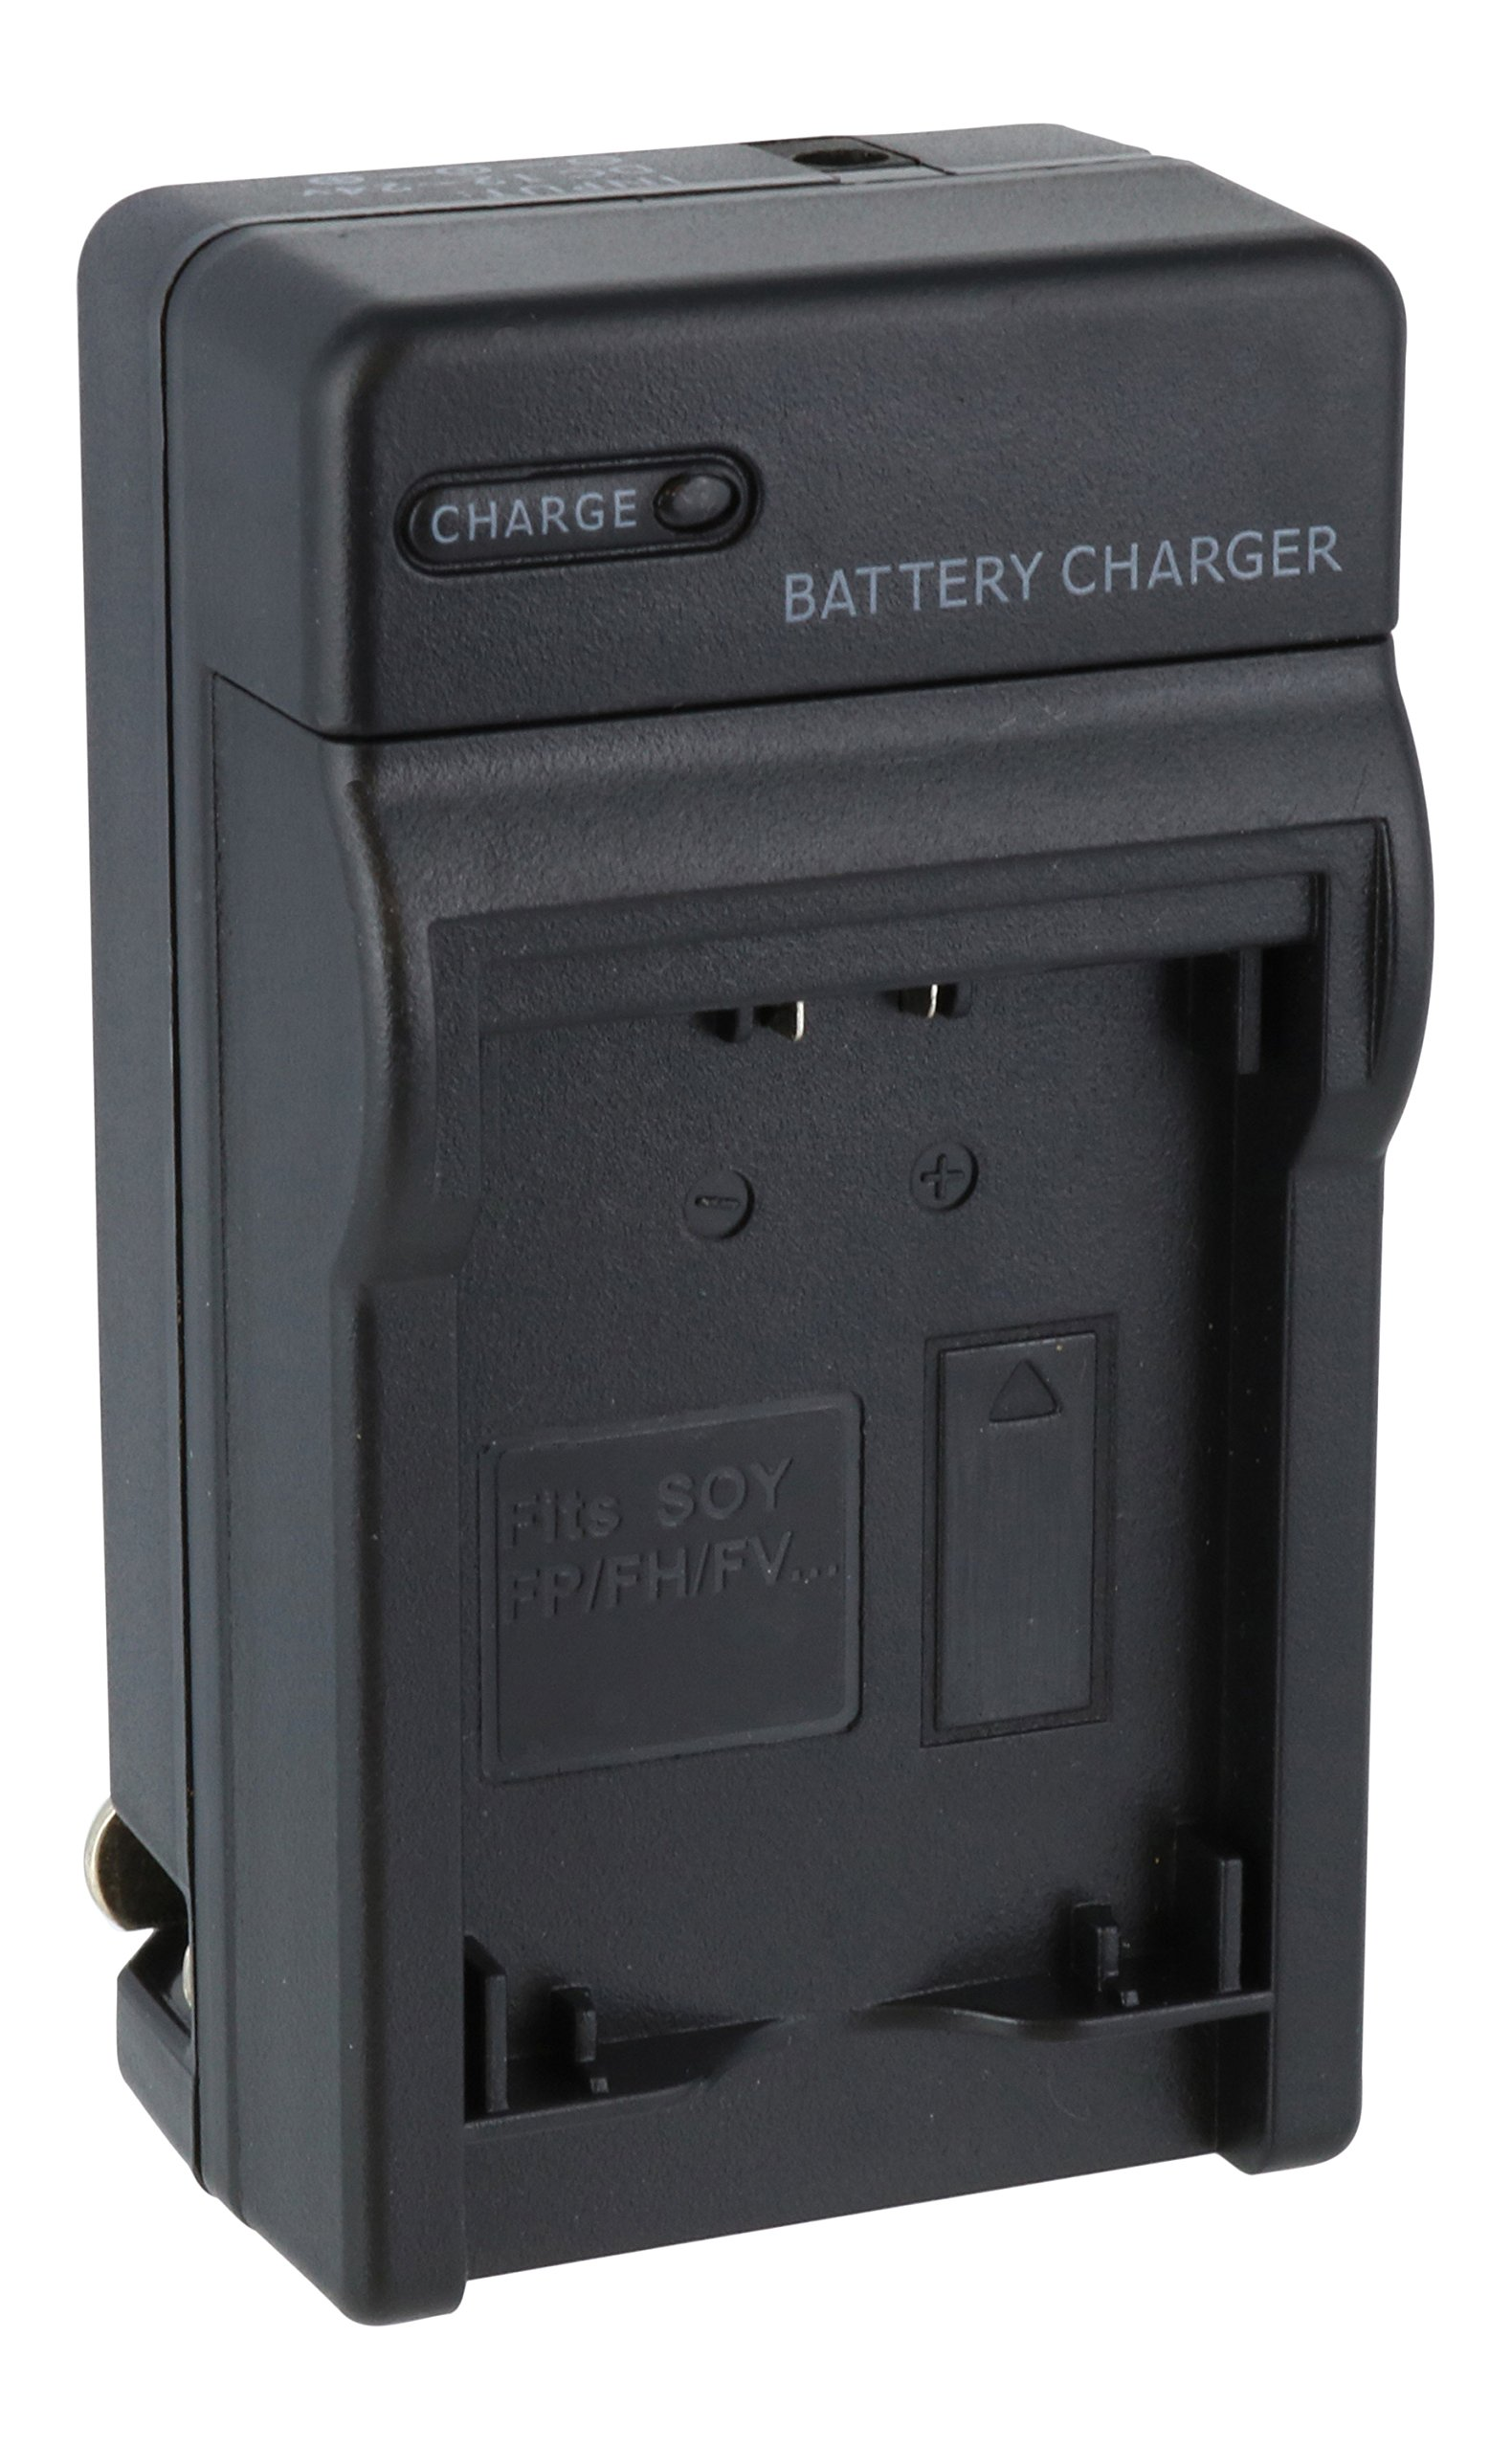 TechFuel Battery Charger Kit for Sony HDR-SR11 Camcorder - For Home, Car and Travel Use